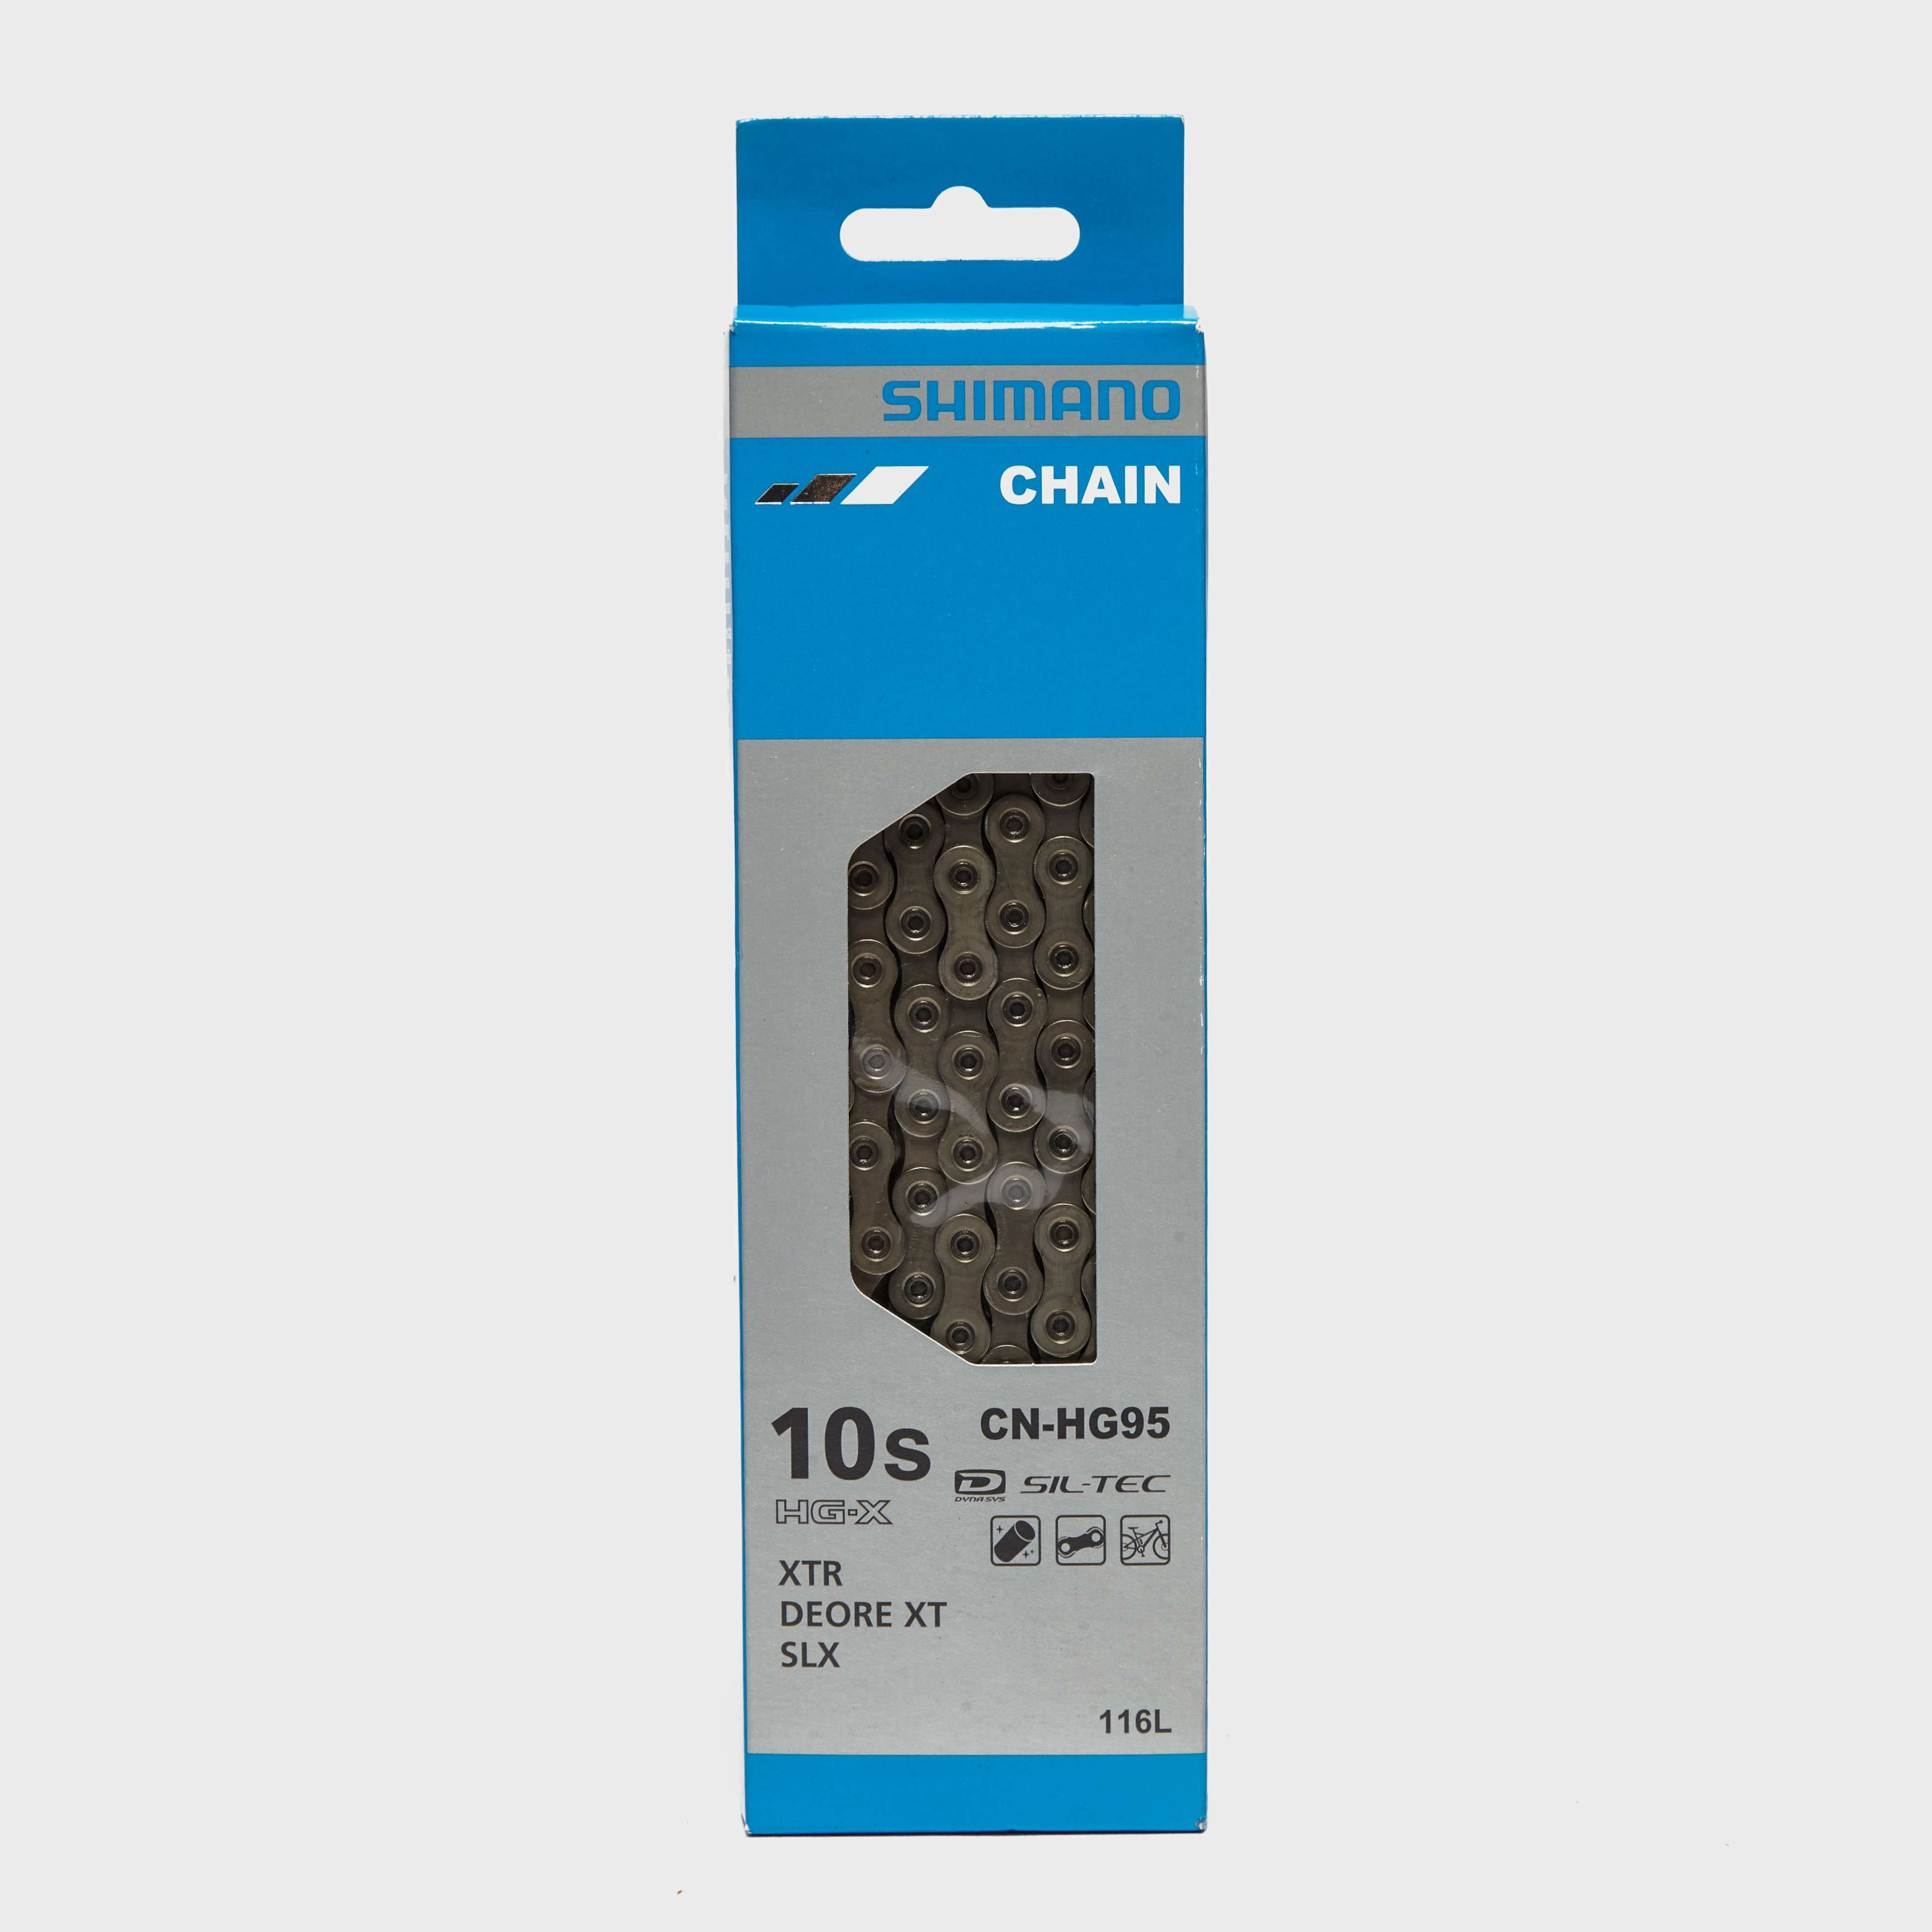 SHIMANO 10 Speed CN-HG95 HG-X Chain